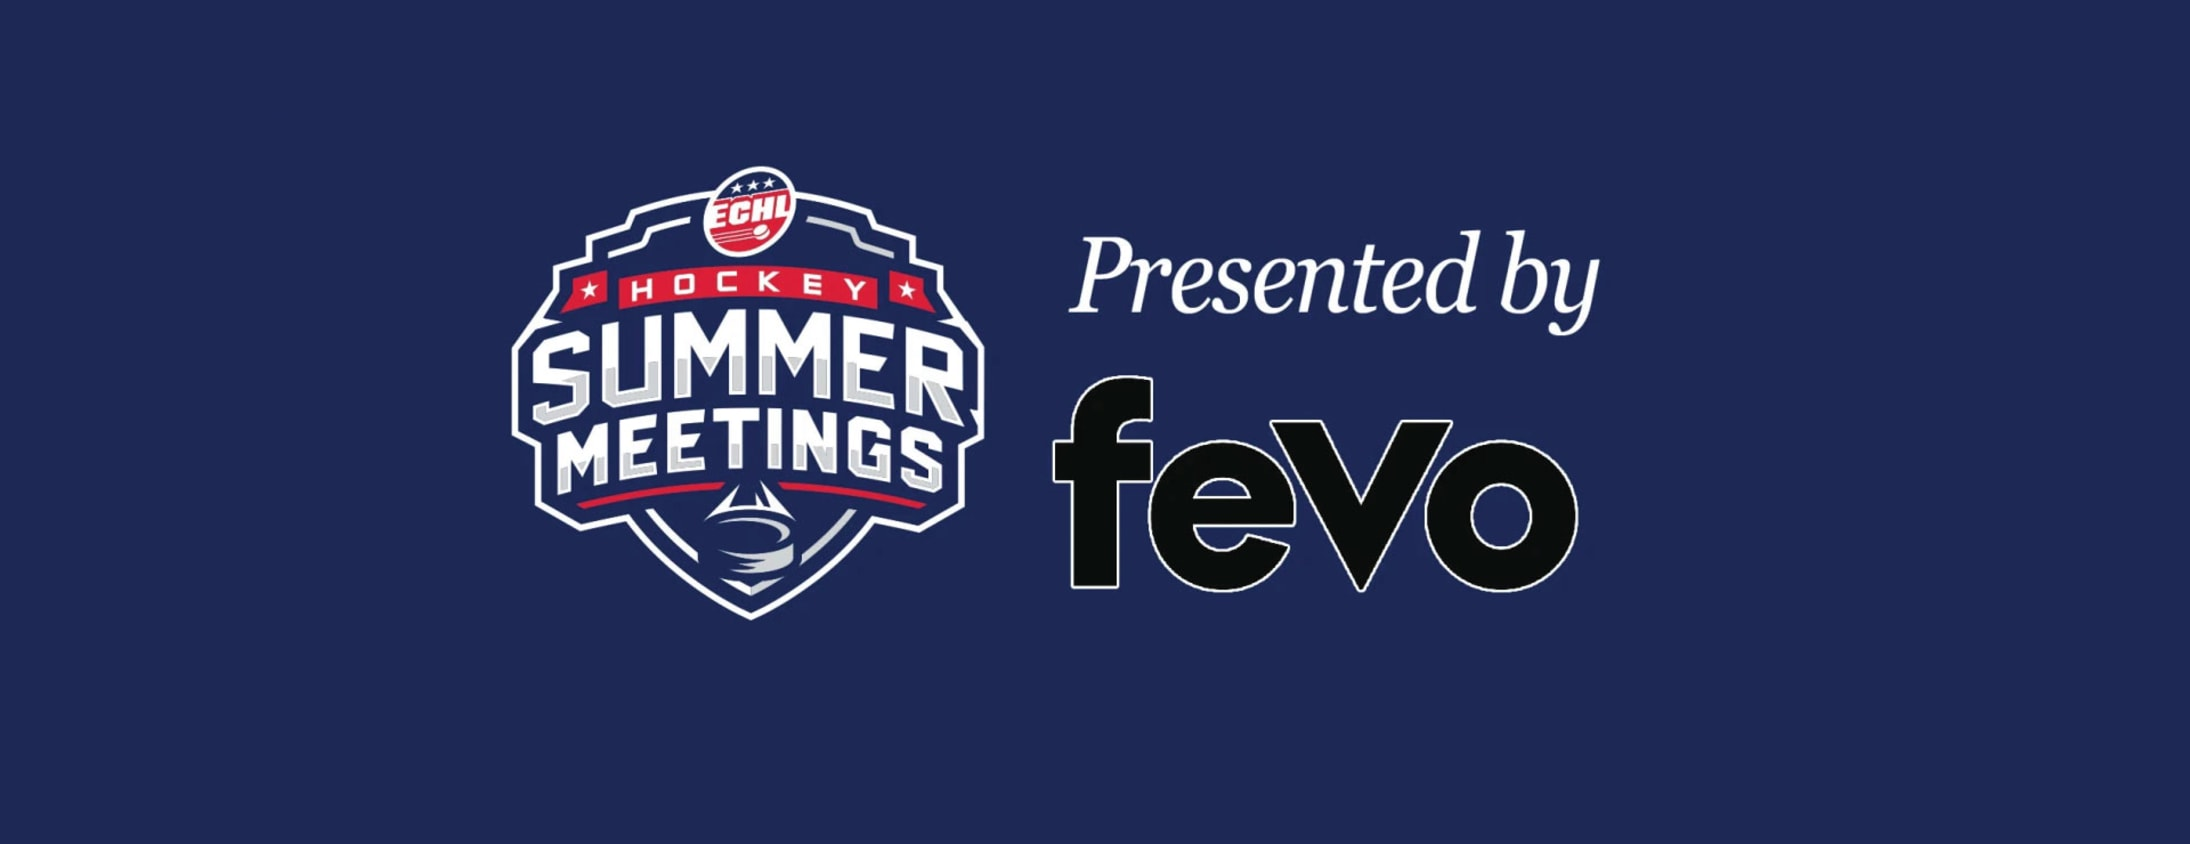 Over 200 Team Representatives Attend Echl Meetings Presented By Fevo